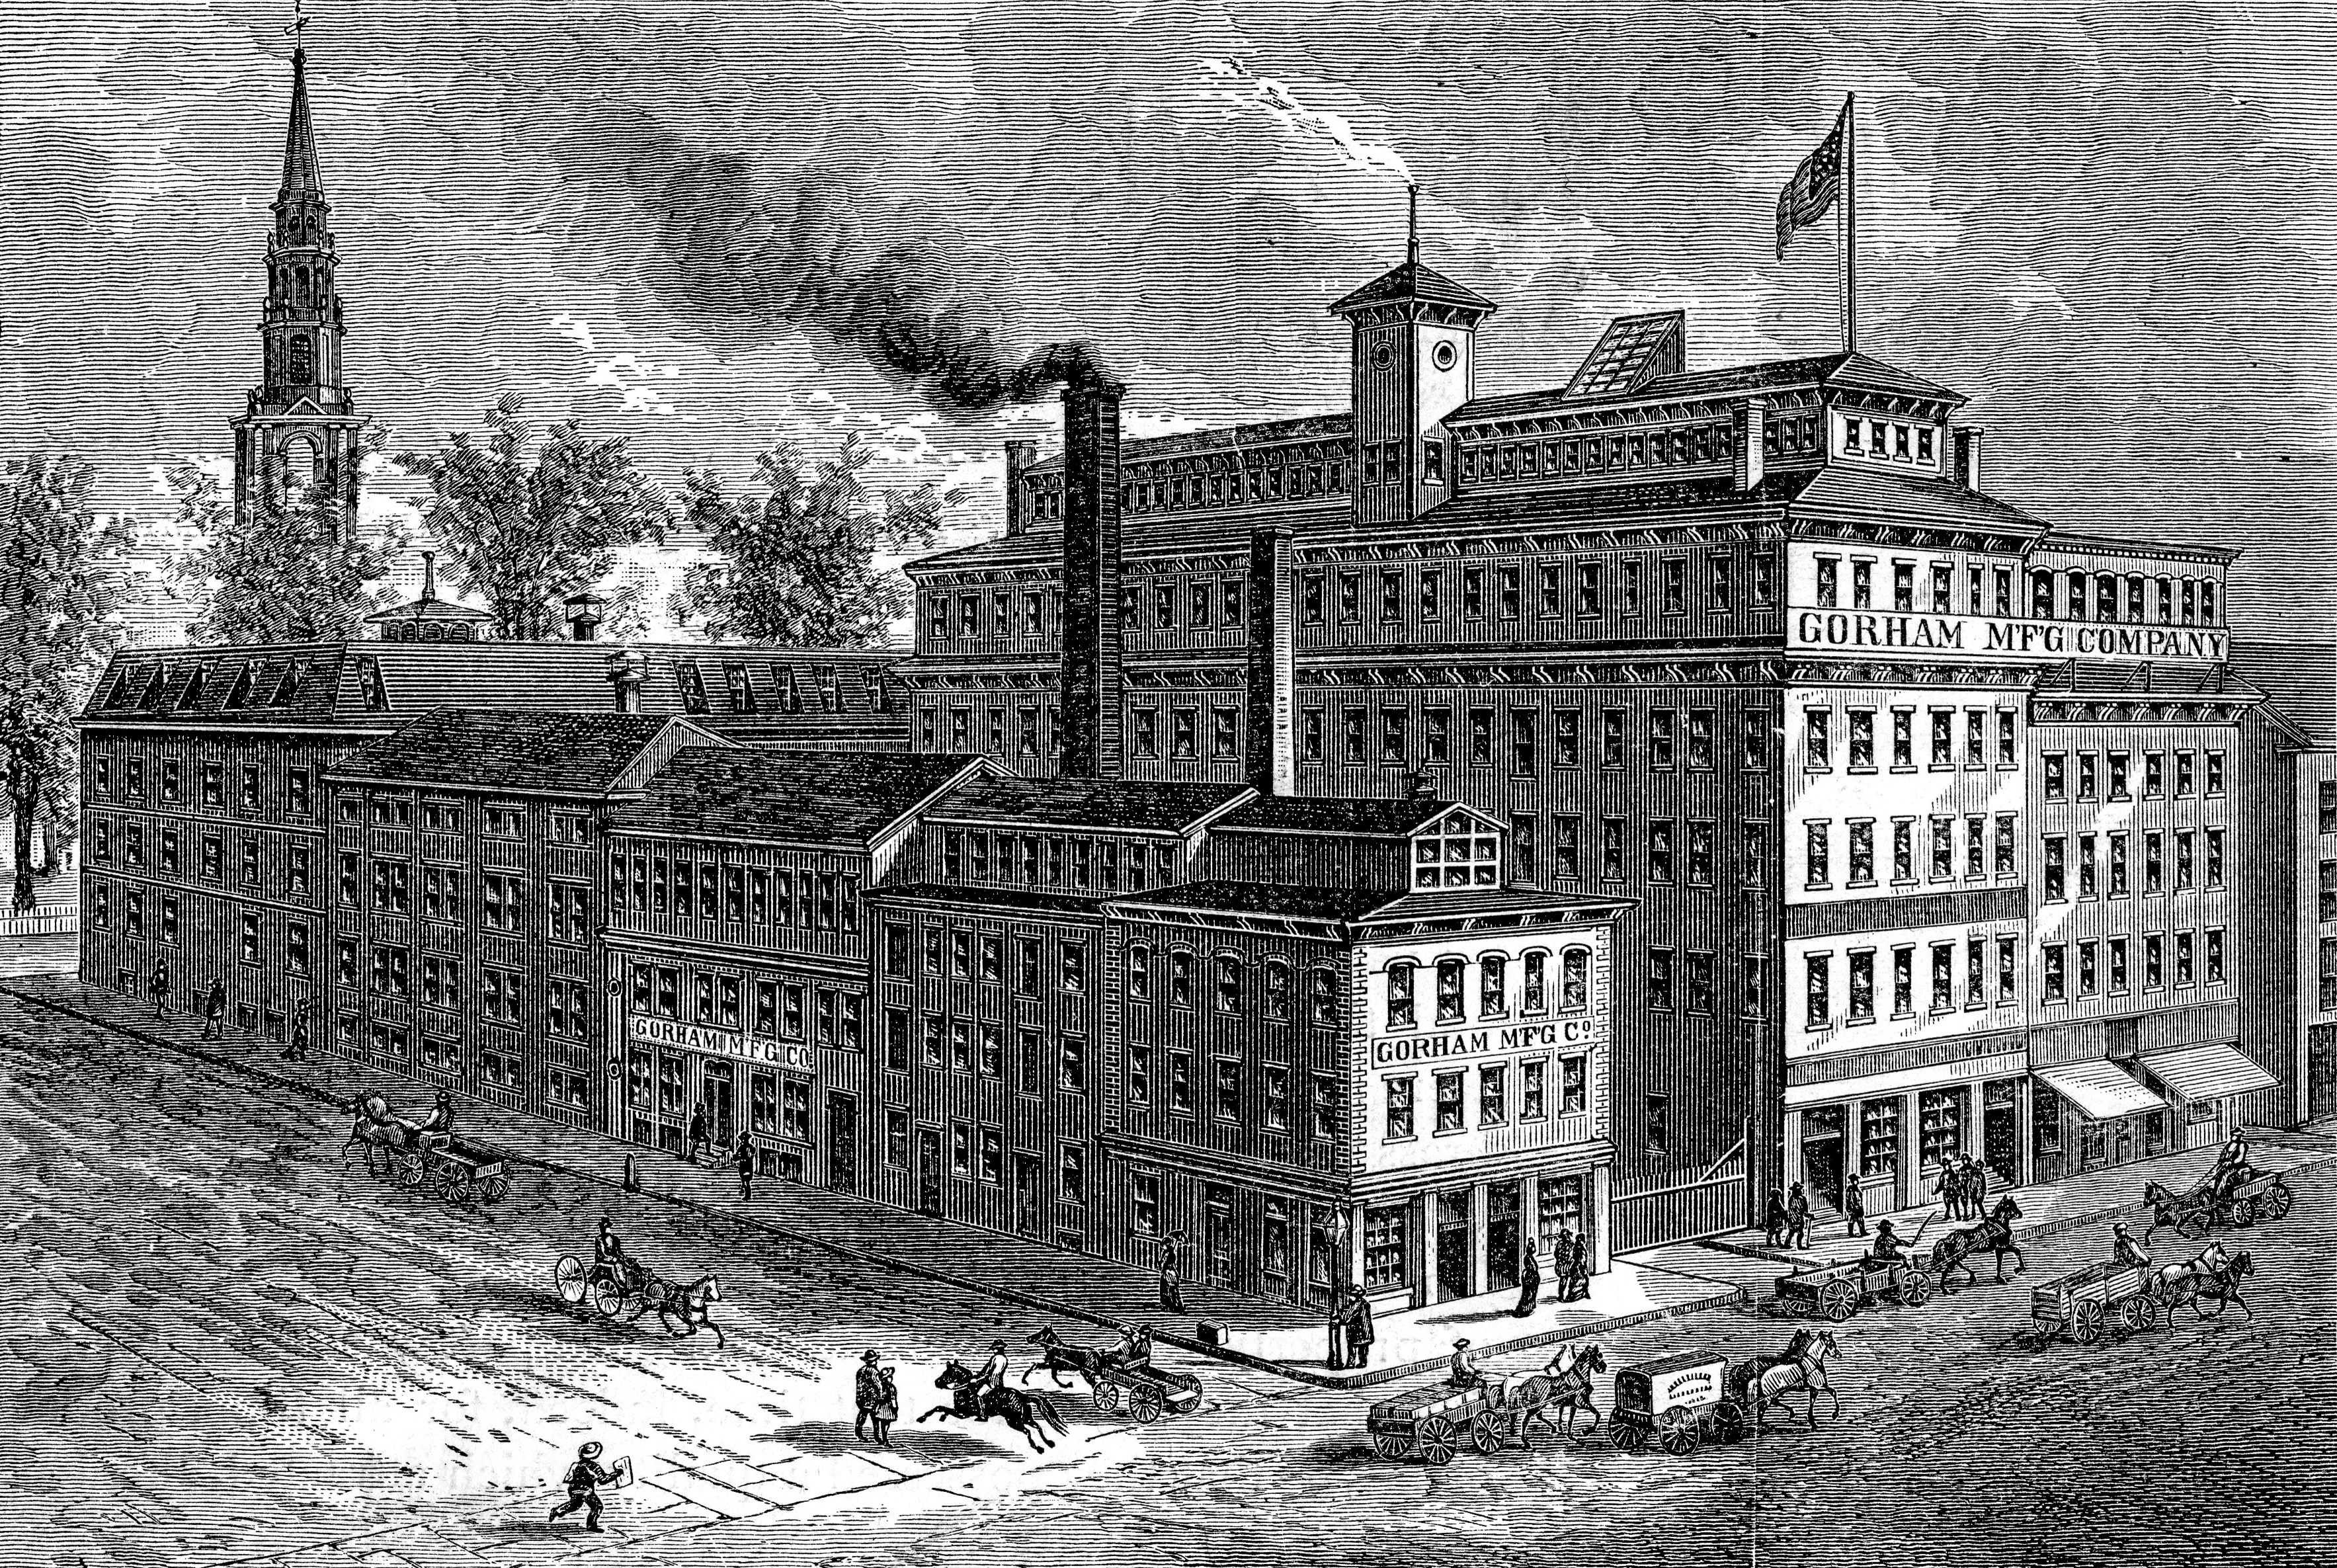 Gorham Manufacturing Company, Providence, R.I., 1886